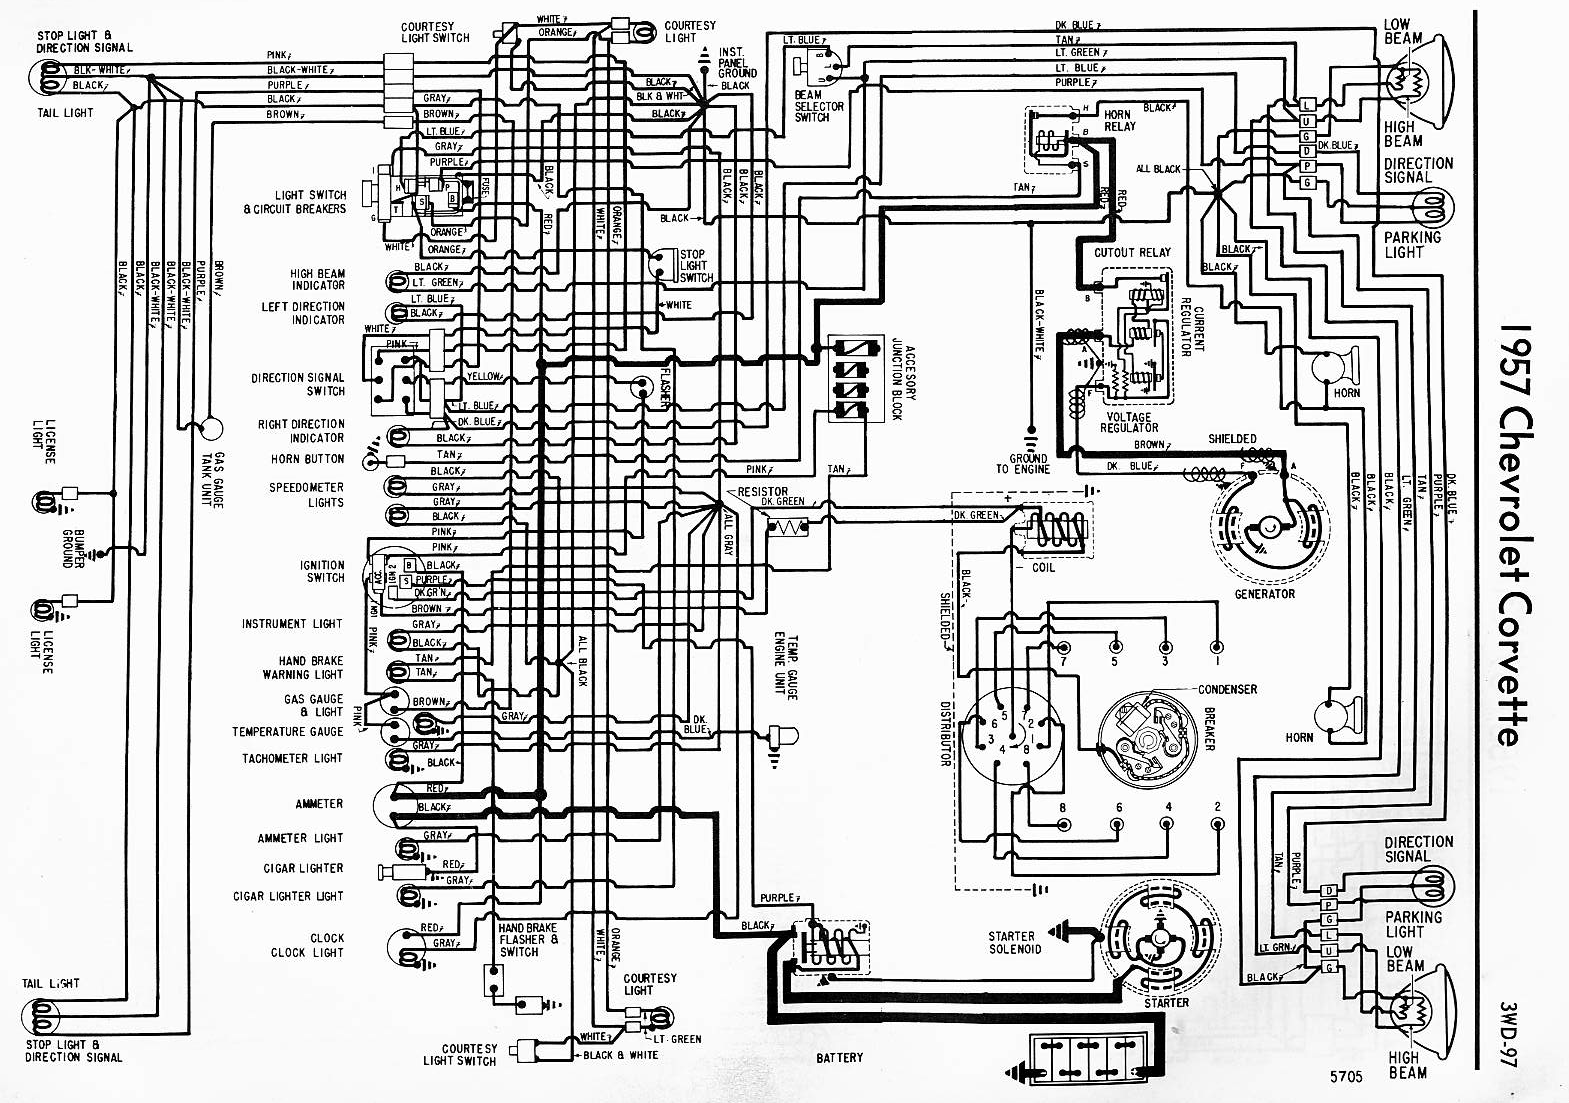 corvette wiring schematic wire management \u0026 wiring diagram corvette c4  fuse 66 corvette wiring schematic